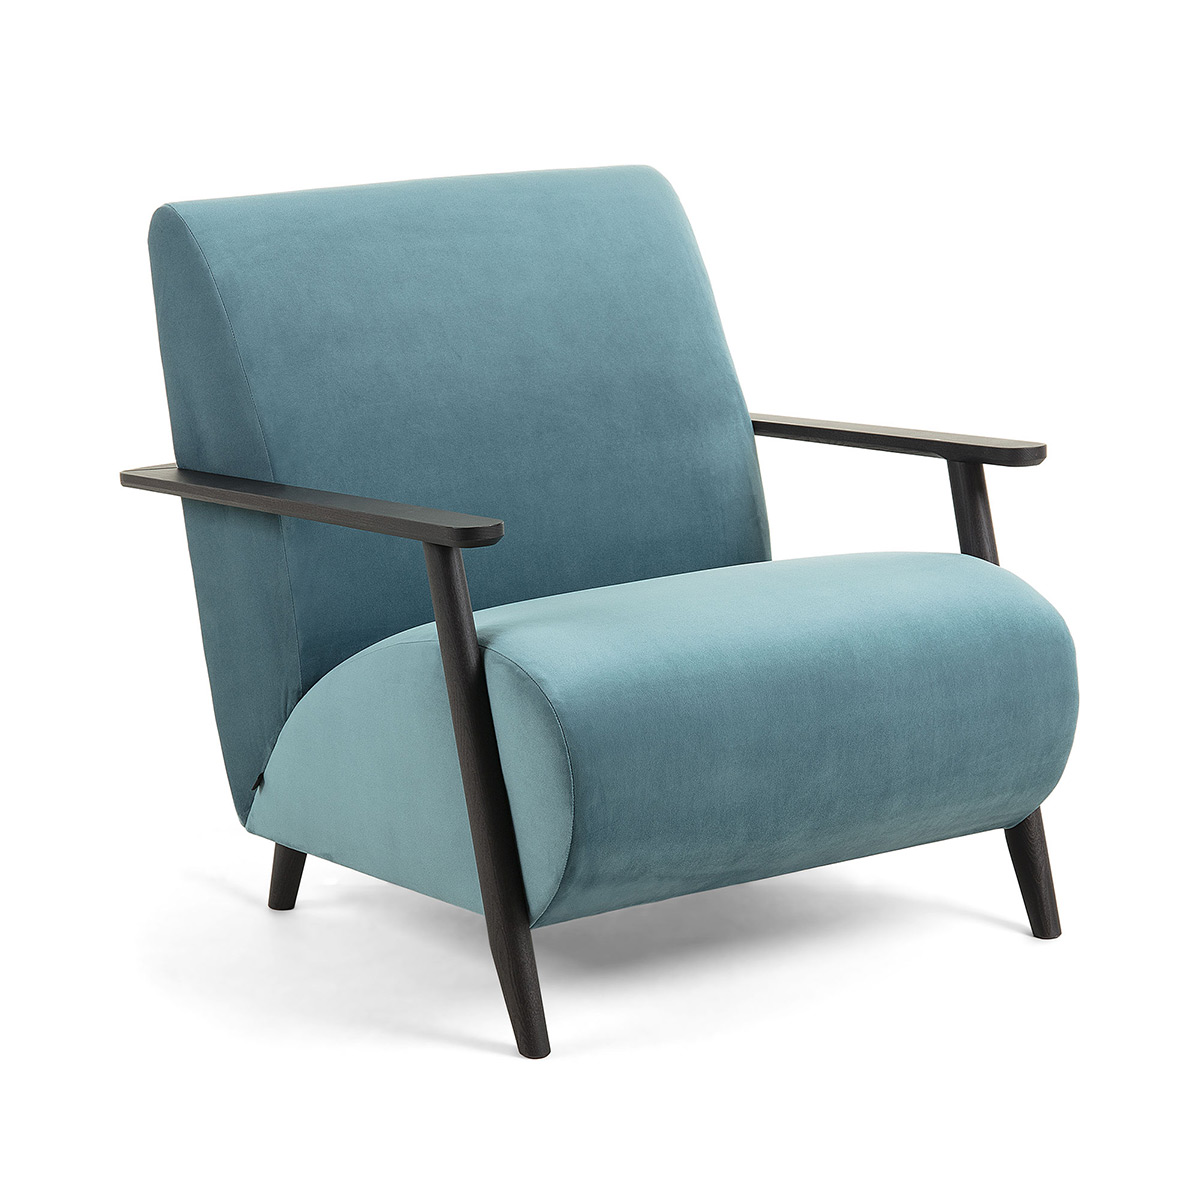 Megan Chair turquoise Kave Home